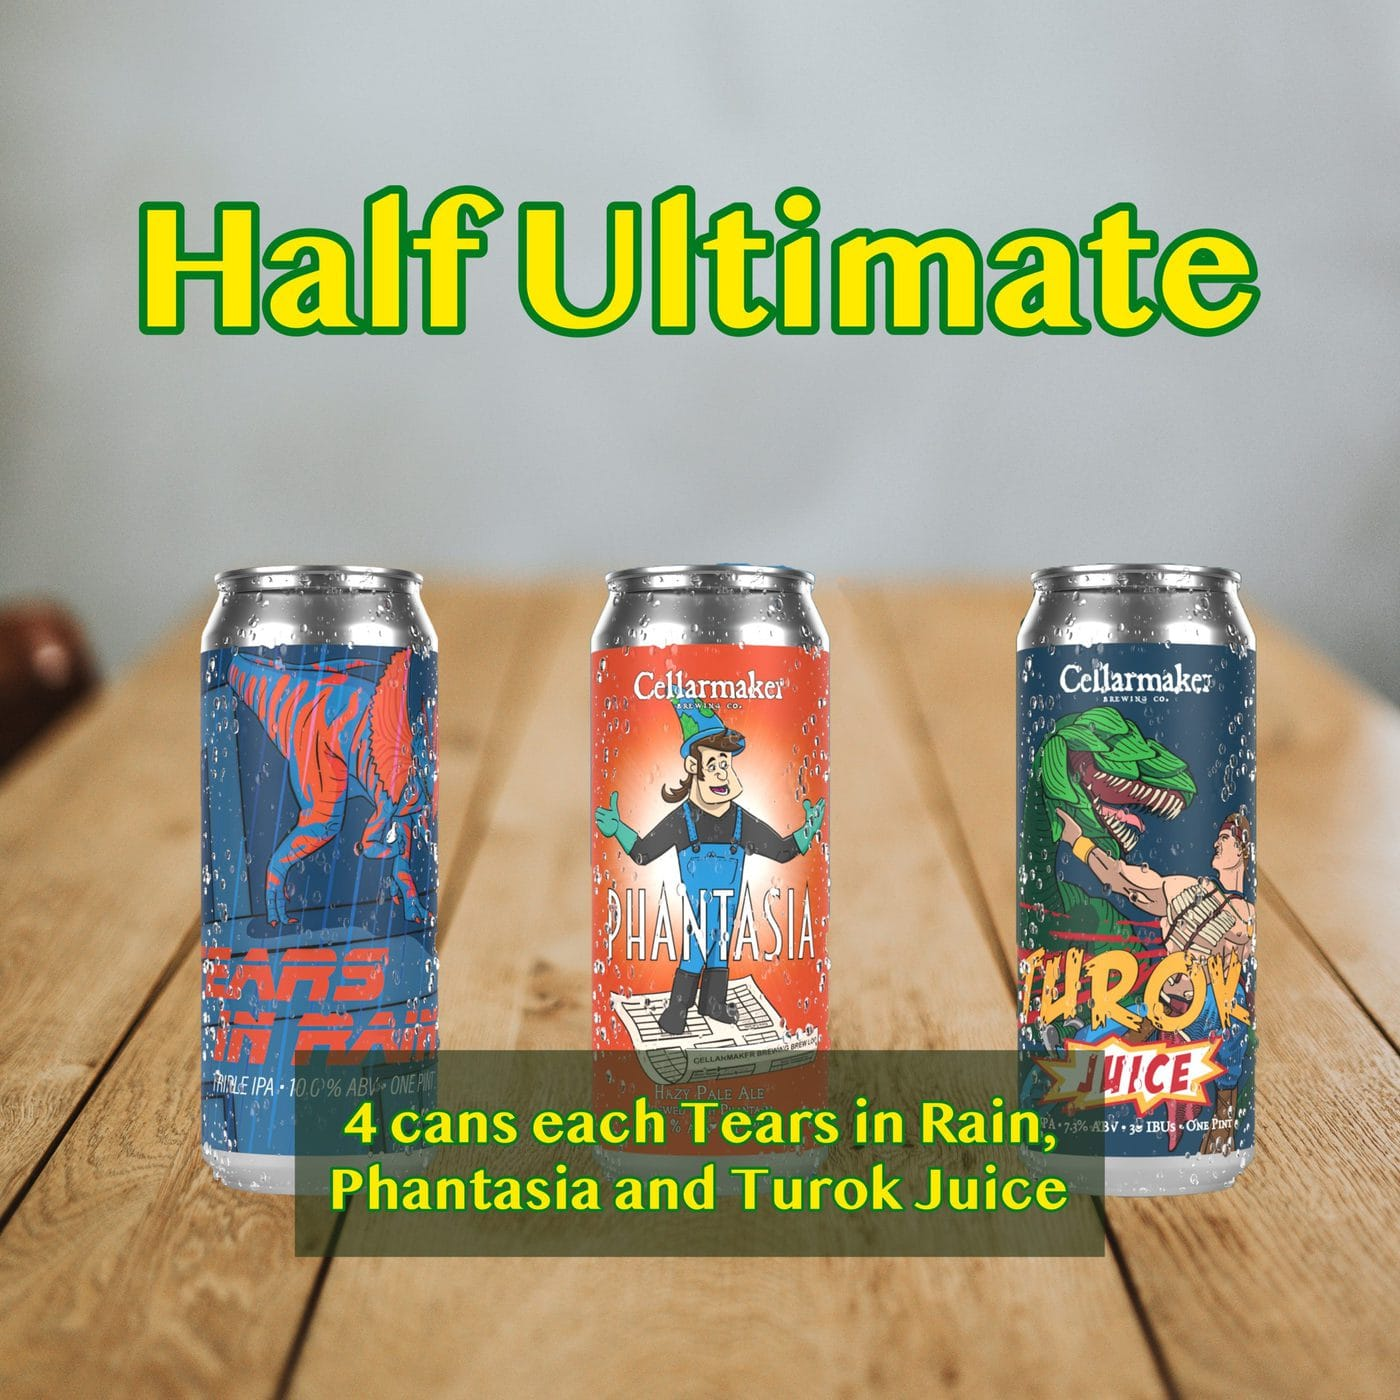 HALF CASE 12 CANS Half Ultimate MIX – 4 Tears In Rain HAZY TIPA, 4 Phantasia New Hazy Pale Ale And 4 Turok Juice Hazy IPA – Shipping Out Tuesday 3/2 For Next Day Delivery*